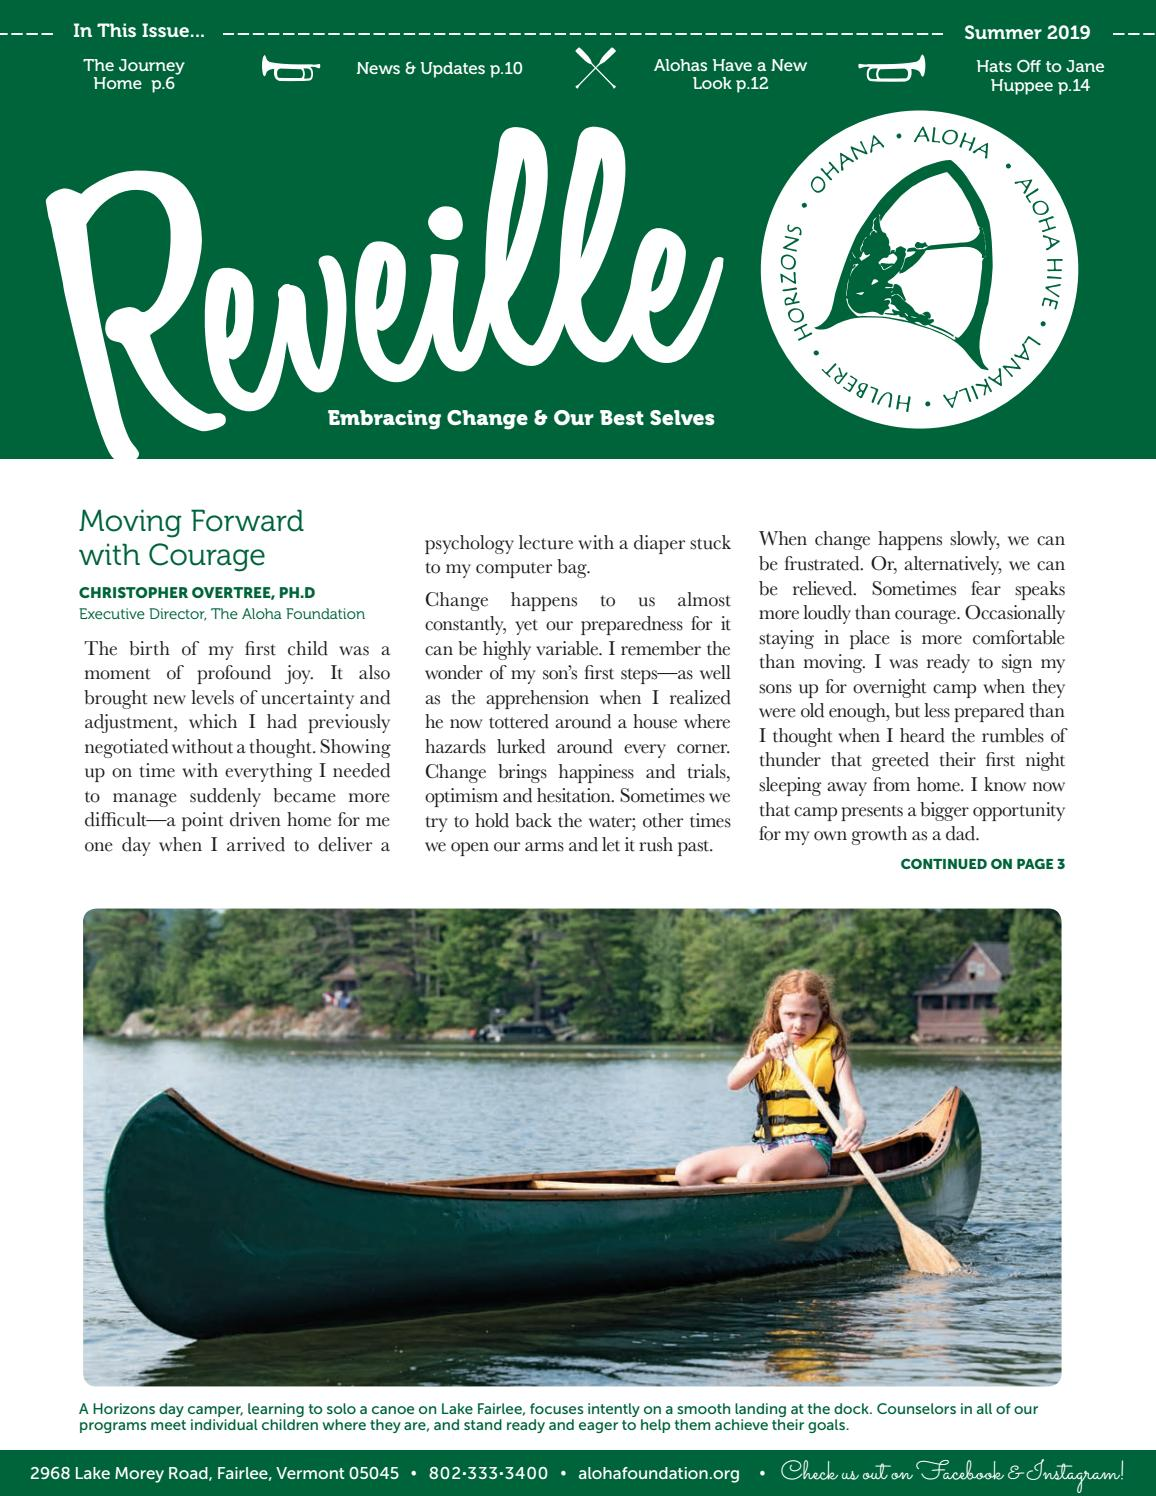 Summer 2019 Reveille by The Aloha Foundation - issuu